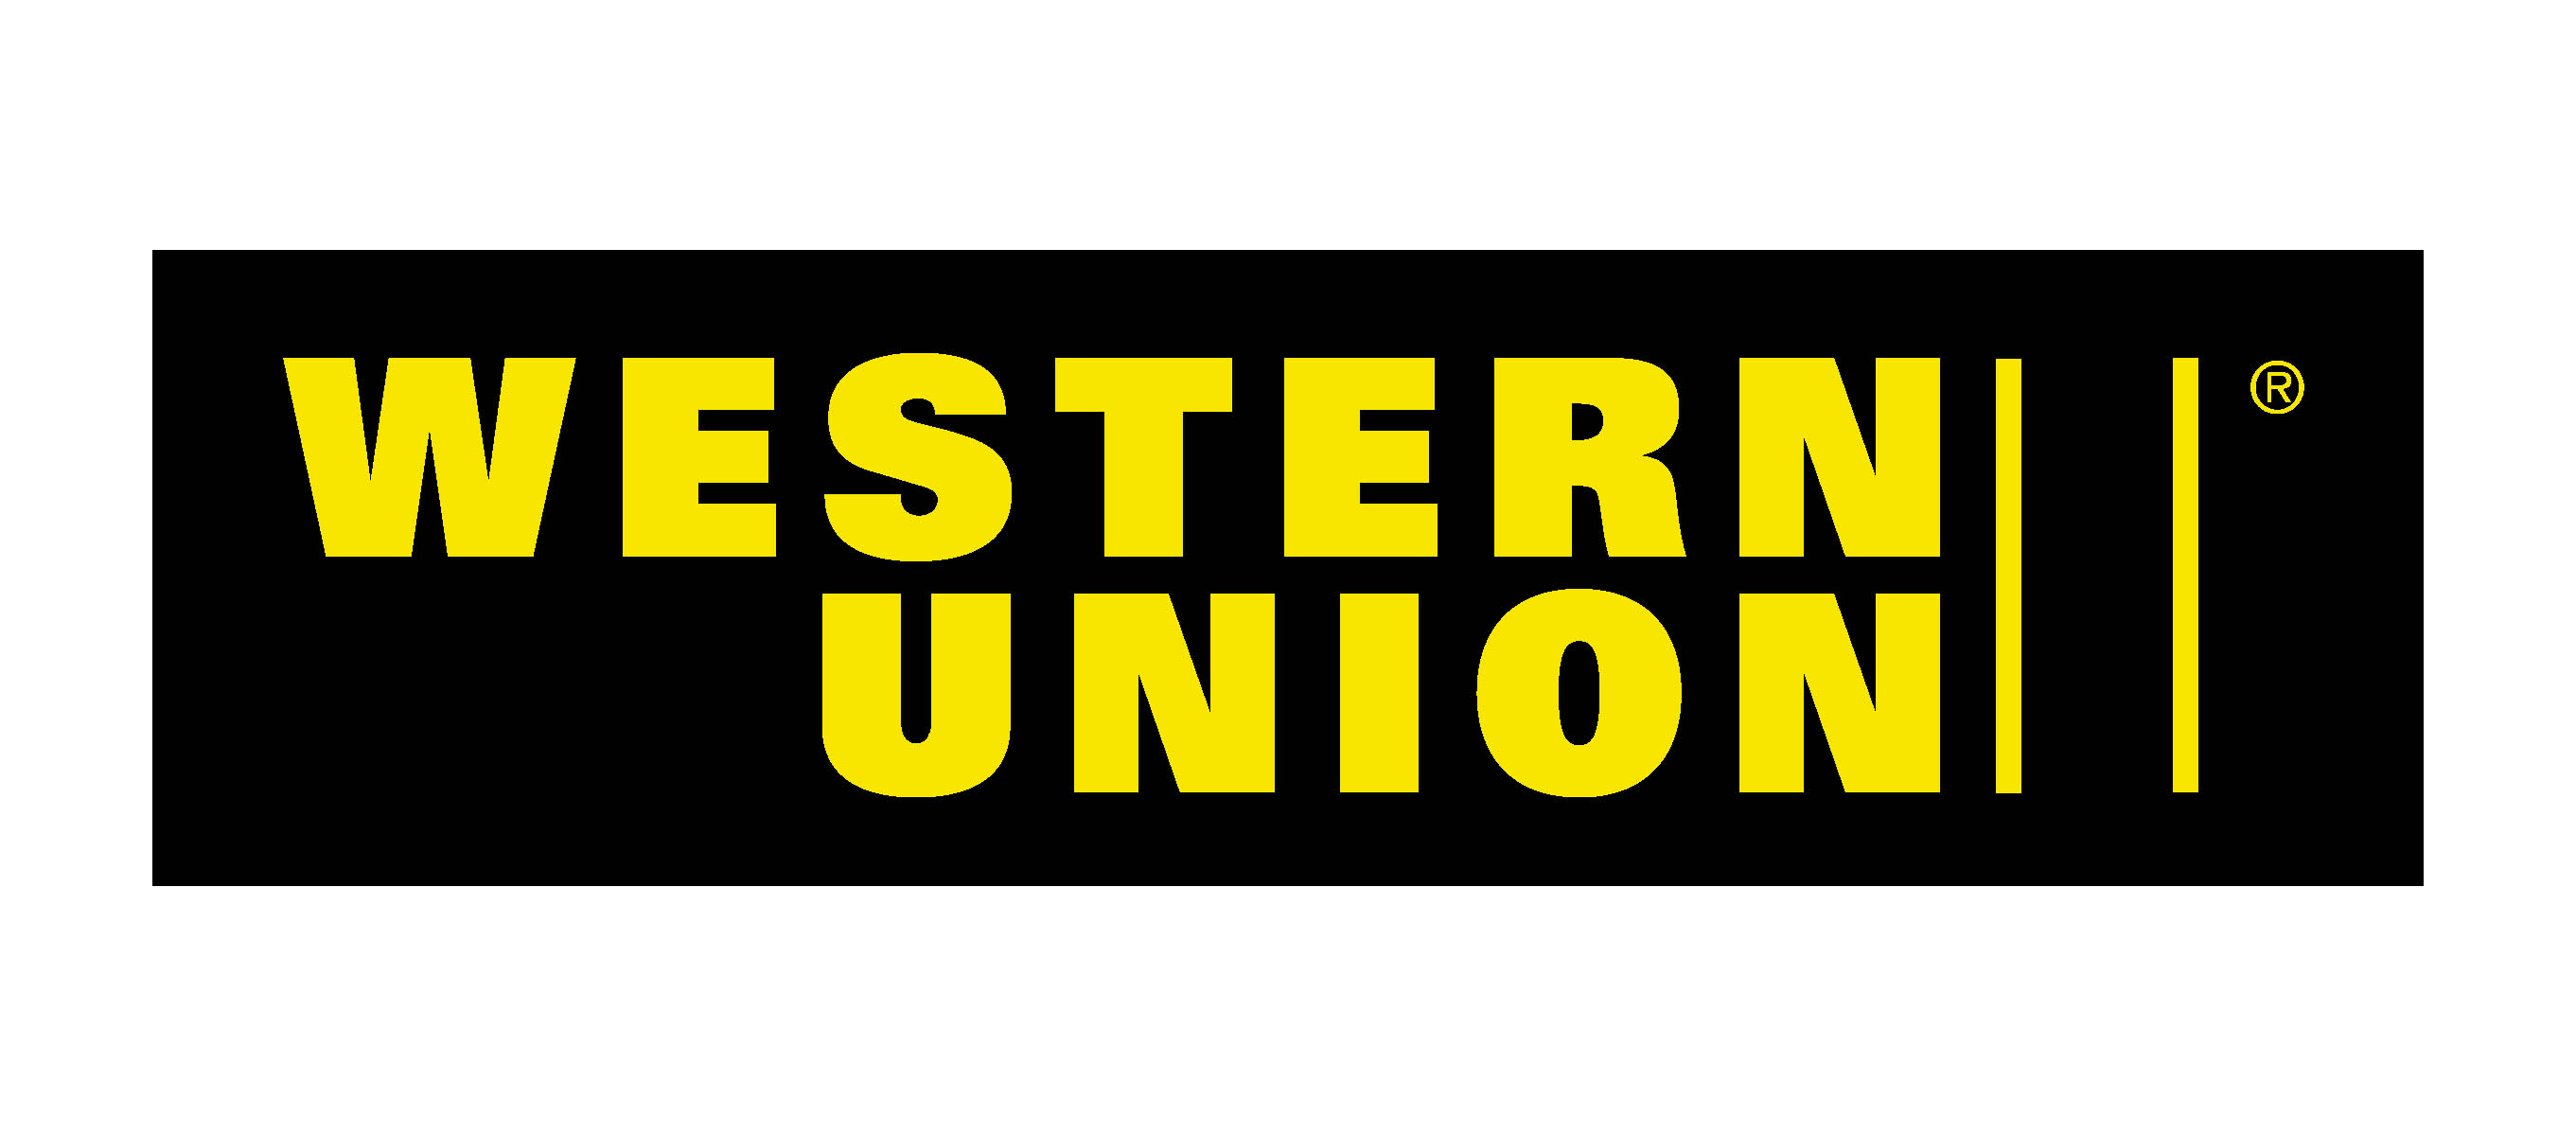 wesren union